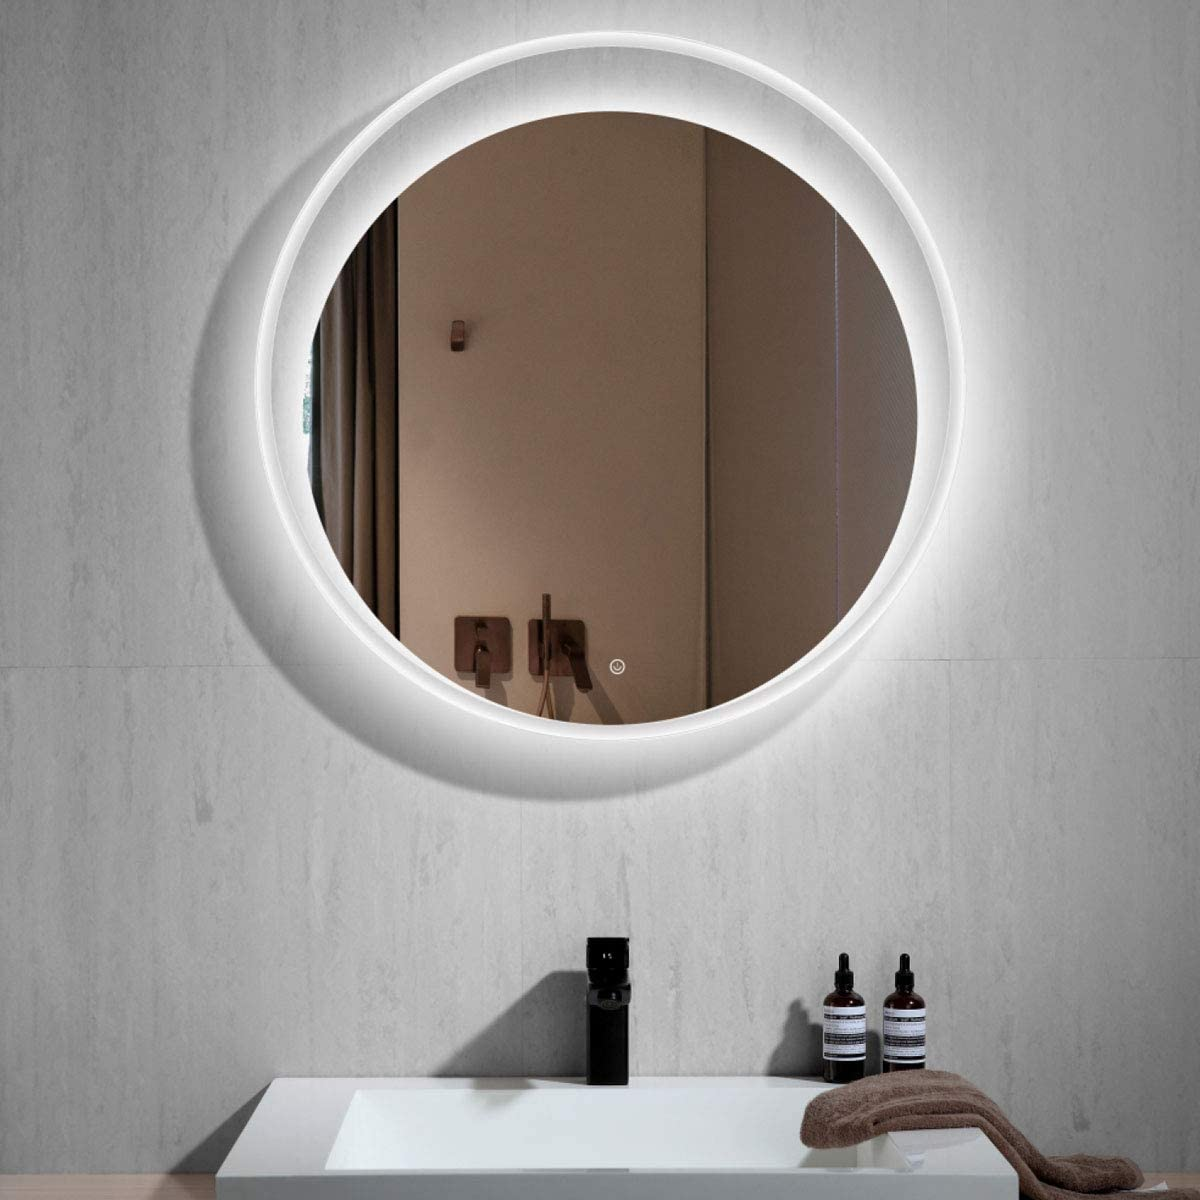 Amazon Com Dp Home 30 In Modern Round Led Backlit Mirror With Touch Button Wall Mounted Lighted Illuminated Vanity Mirrors For Bathroom Bedroom Living Room E Ck209 Home Kitchen